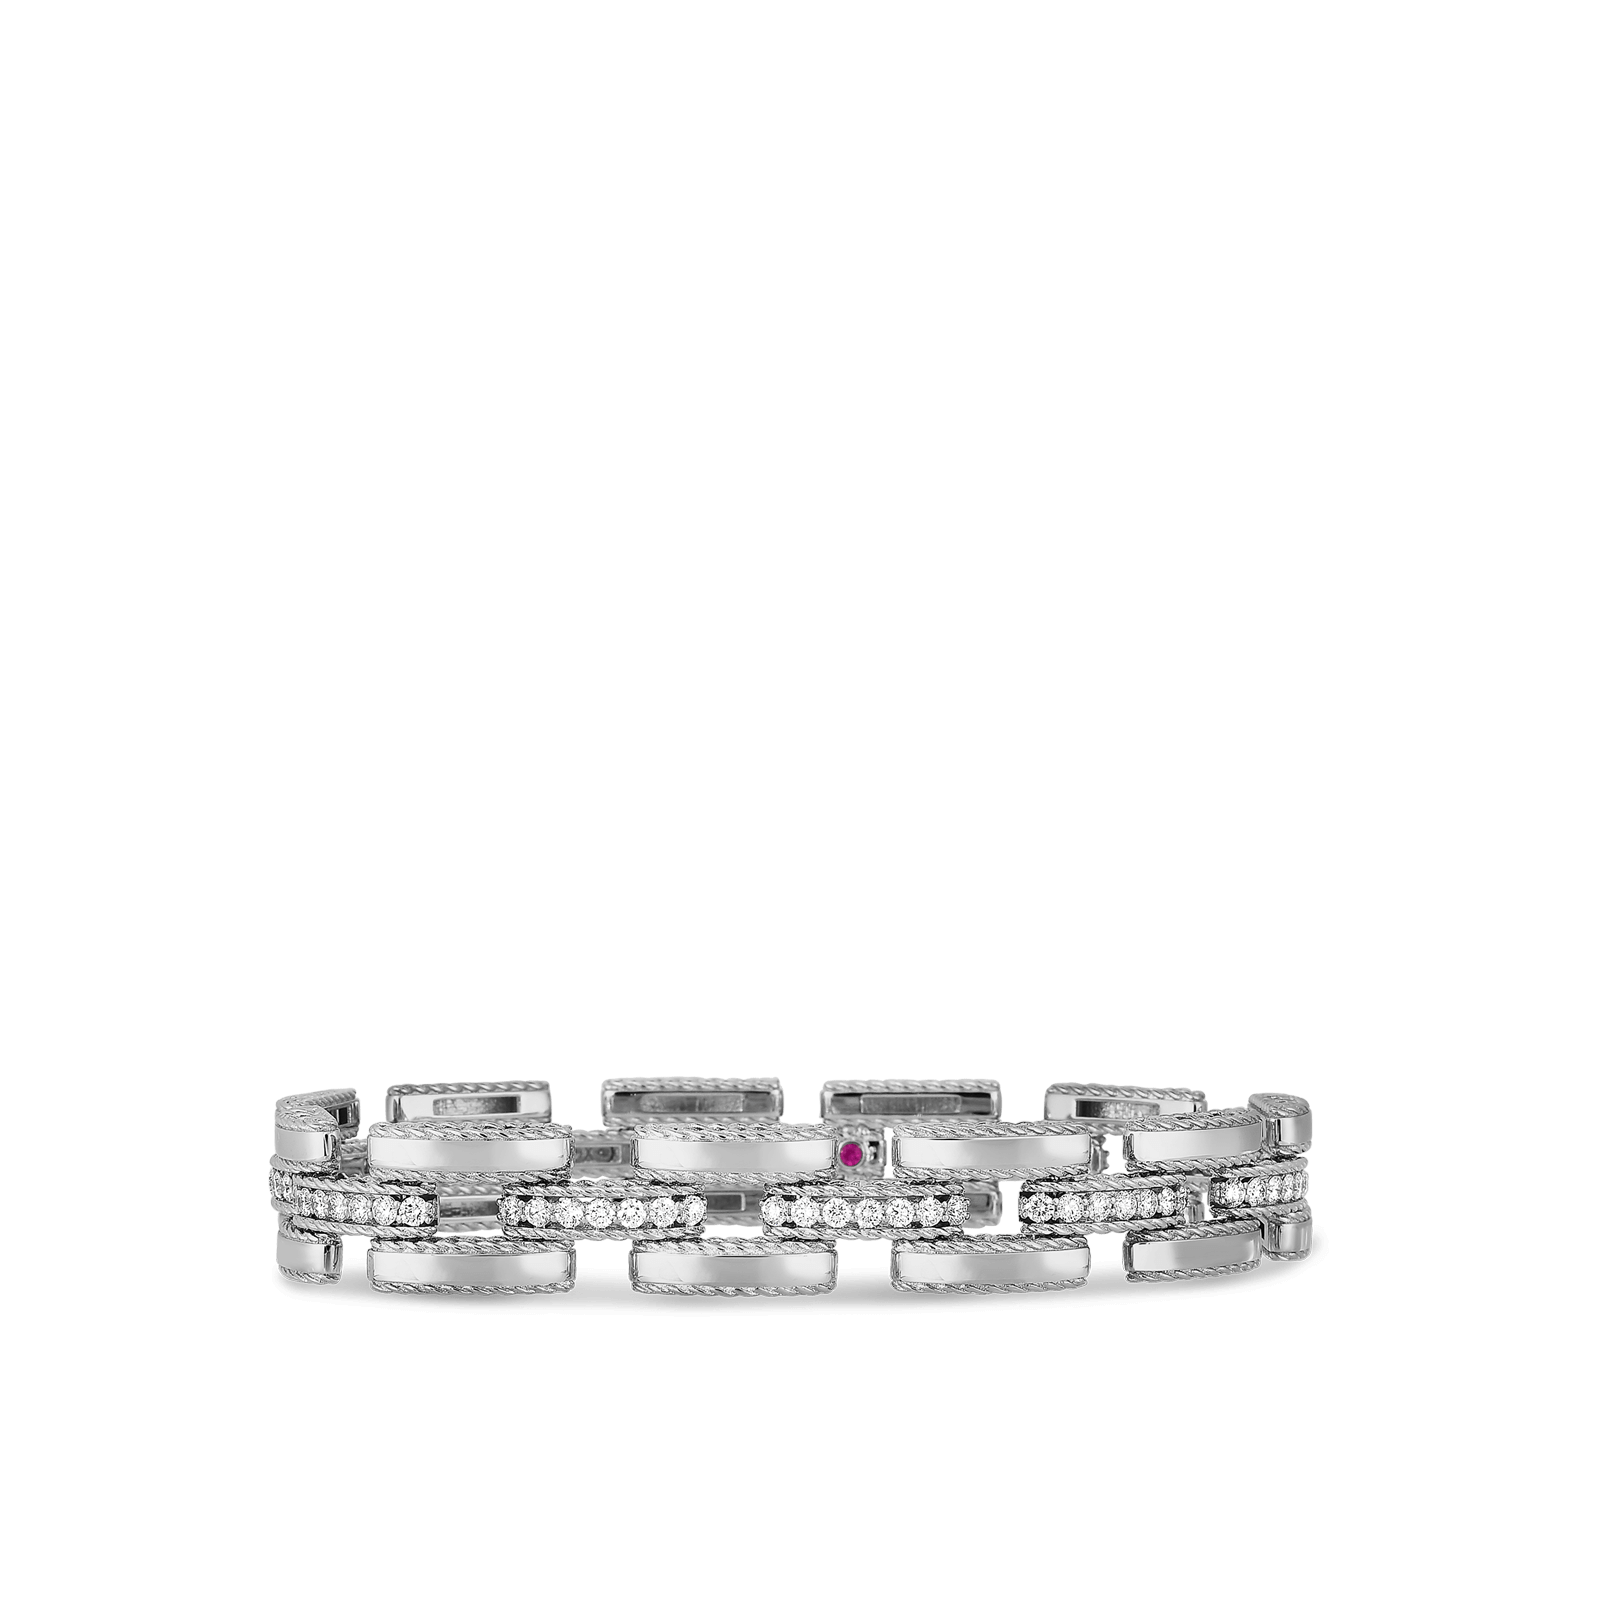 wholesale cross silver men jewelry style product bracelet korean thai starfield silverware sterling s retro